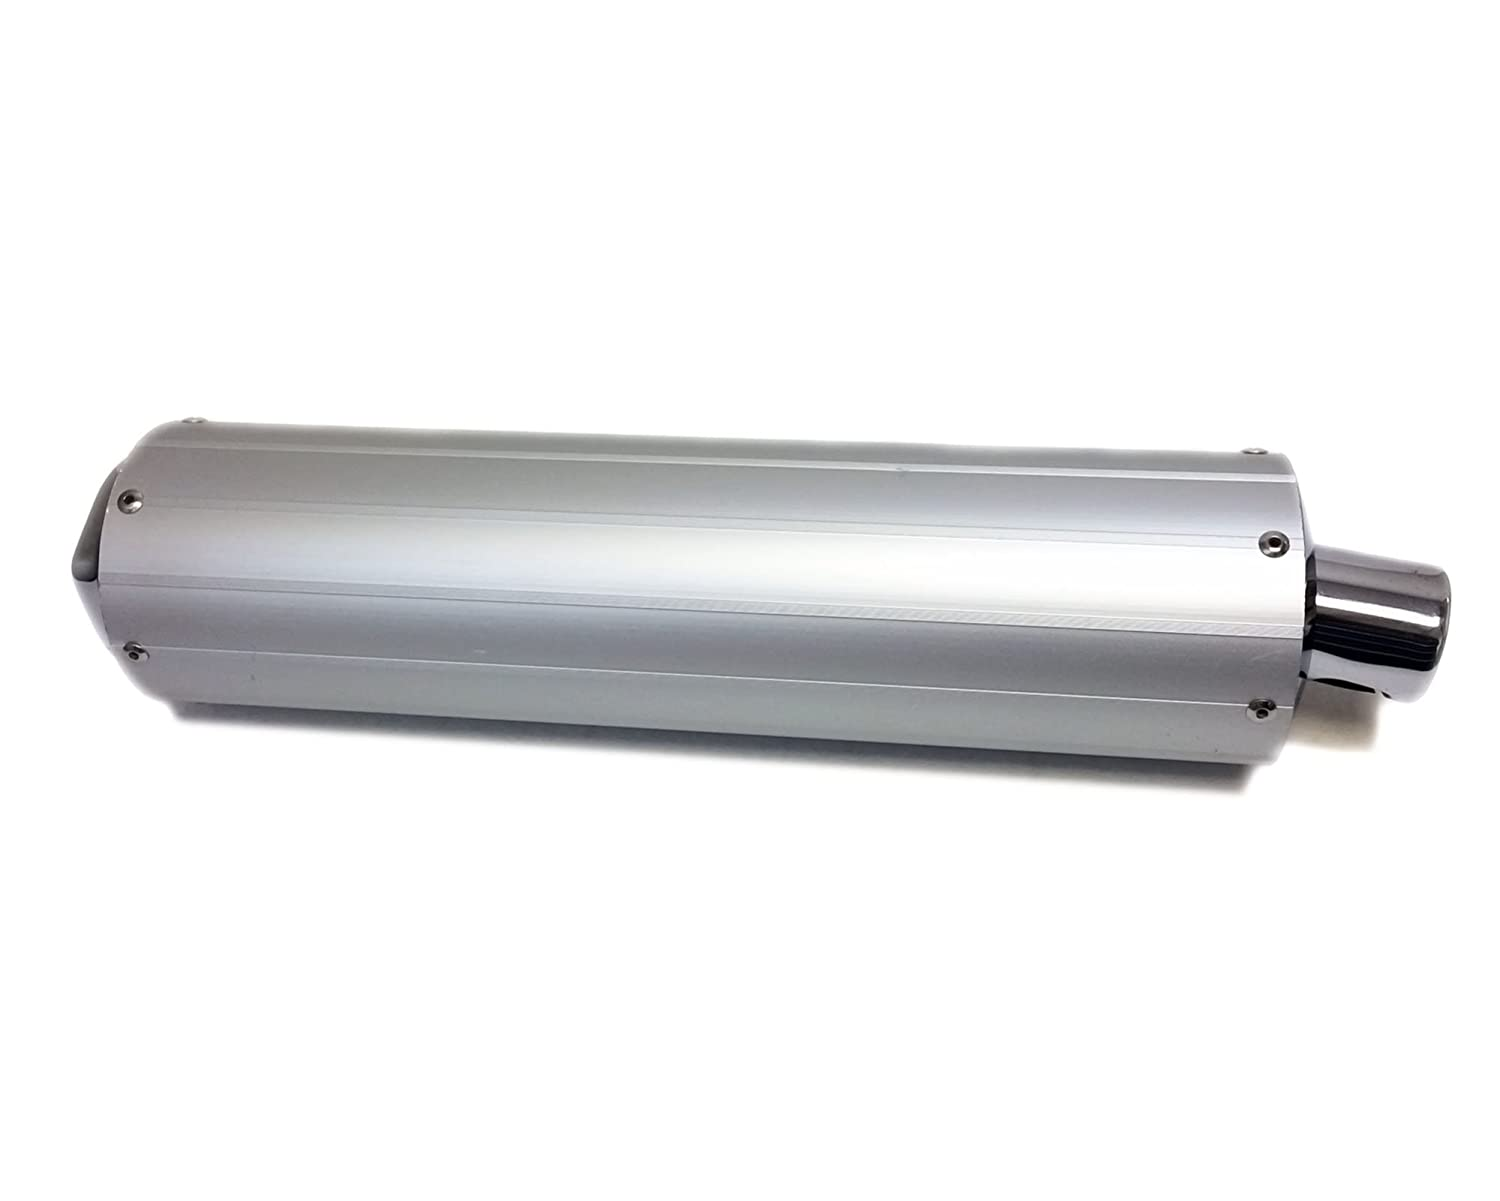 GY6 150cc 4 Stroke Stock Exhaust Pipe Silencer Muffler Assembly Scooters